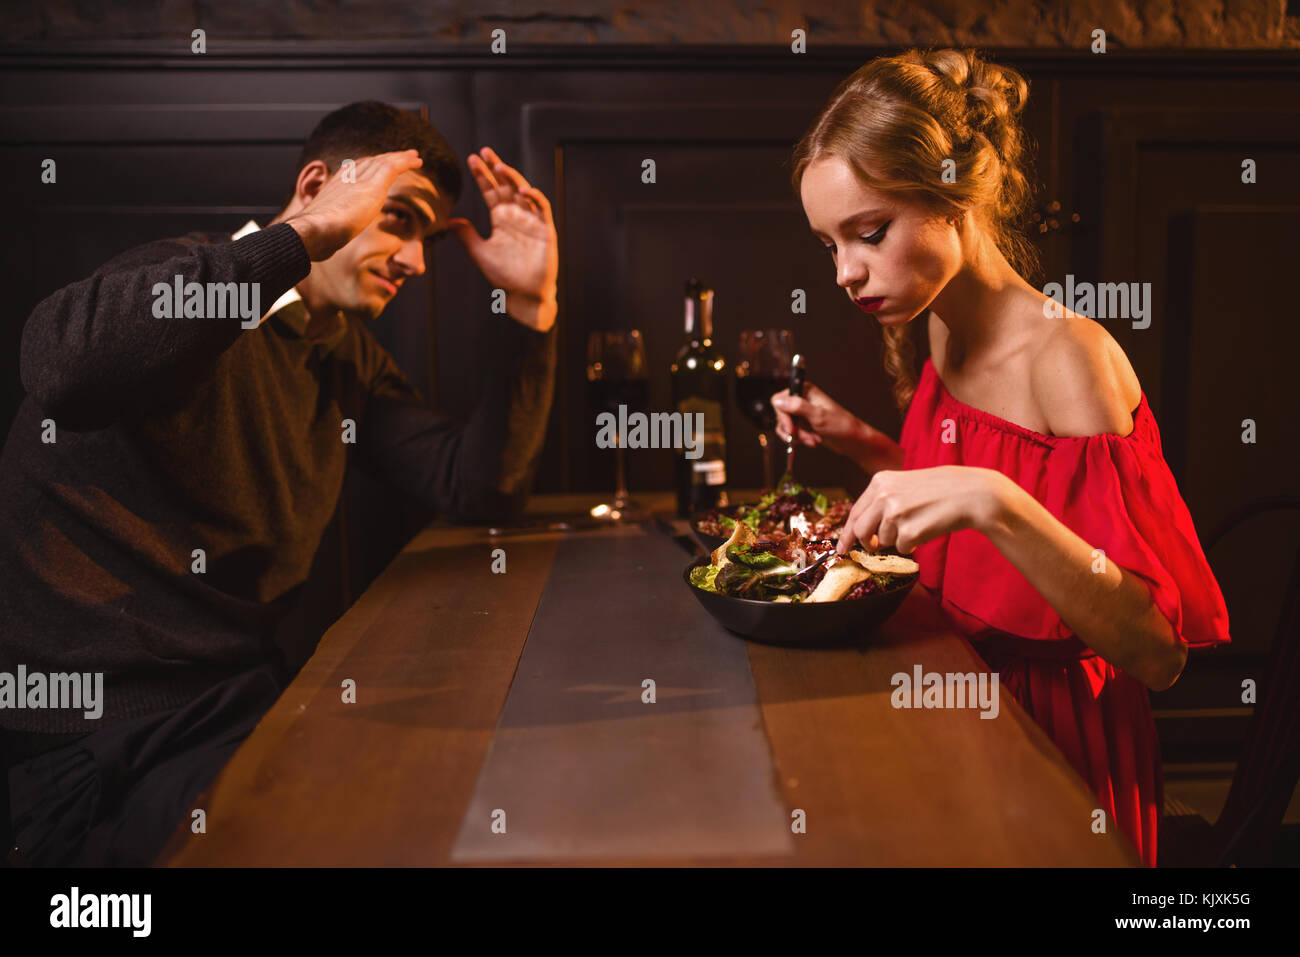 a3f83508b5336 Quarrel of young couple in restaurant, bad evening. Elegant woman in red  dress and her man eating in cafe